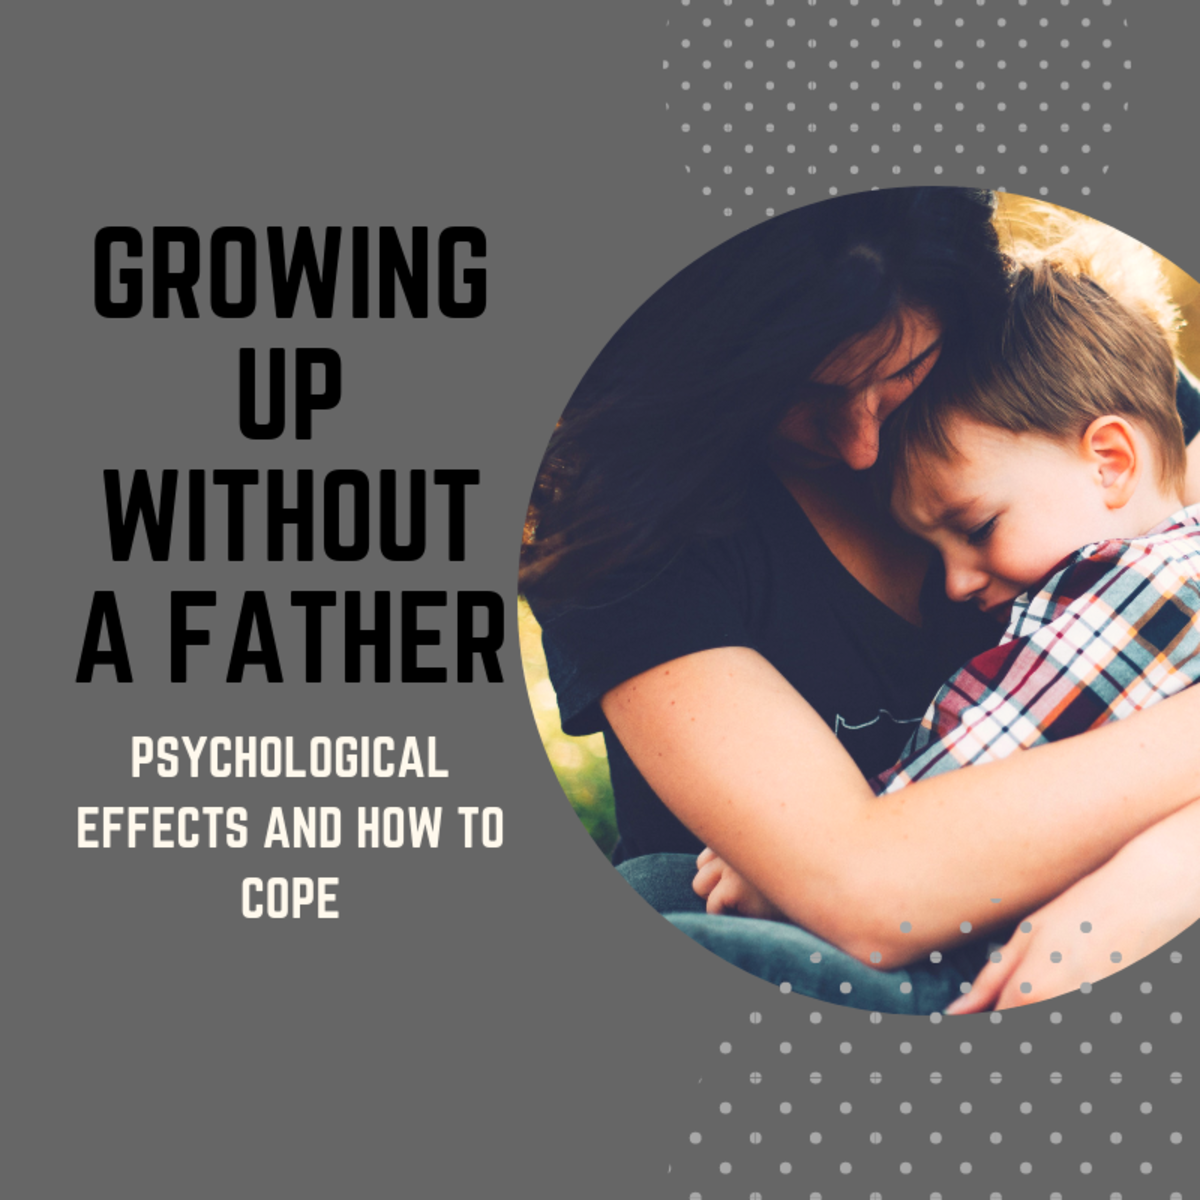 Growing Up In Poor Neighborhoods Can Have A Devastating Impact >> Psychological Effects Of Growing Up Without A Father Owlcation